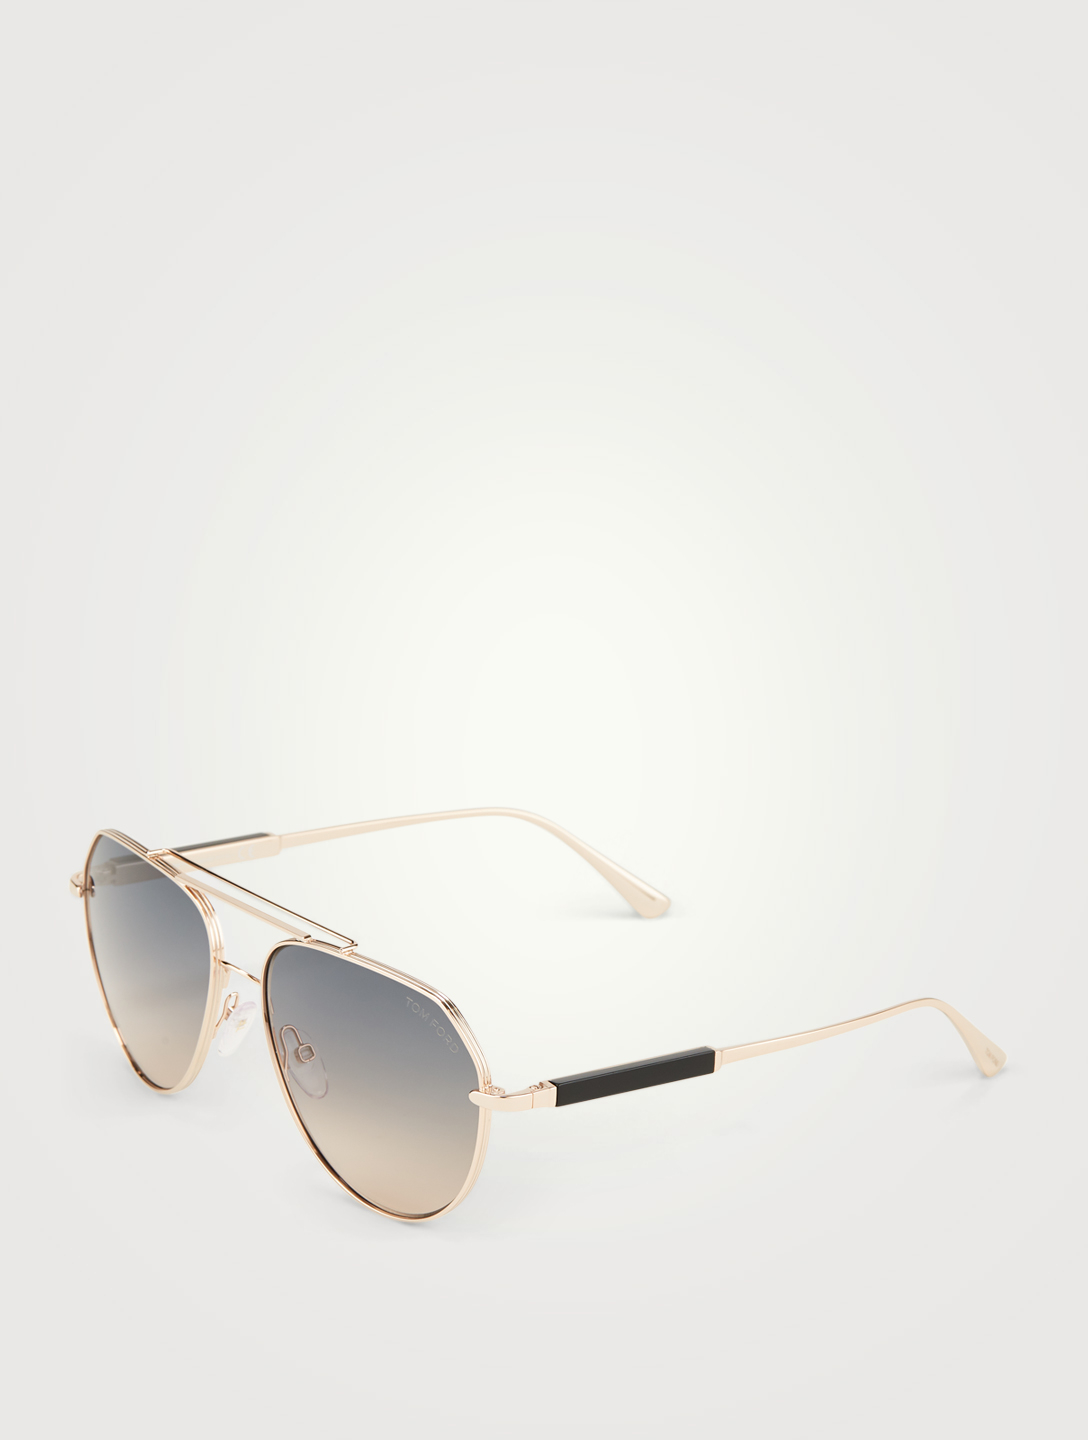 TOM FORD Andes Aviator Sunglasses Men's Gold